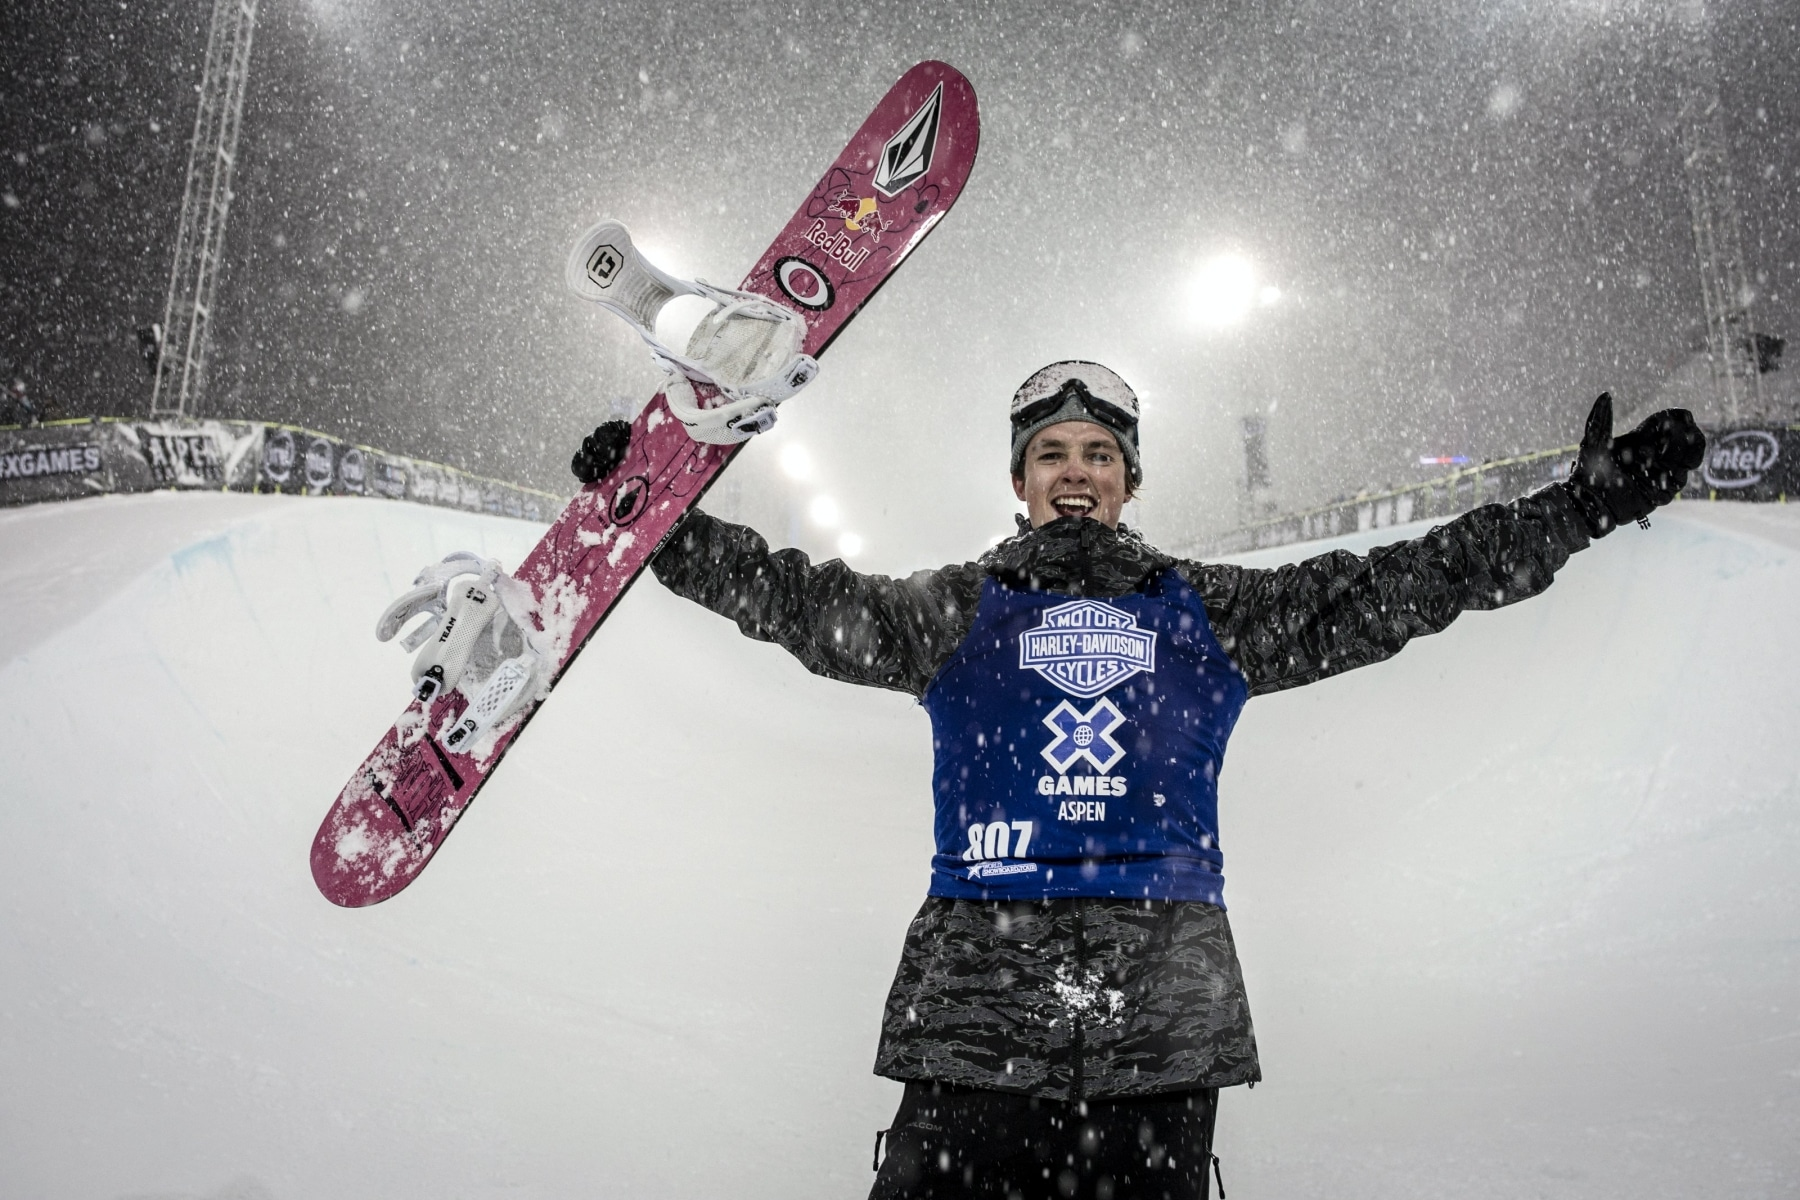 Interview With Scotty James - Pro Snowboarder, Olympian, Pilot & Banjo Man